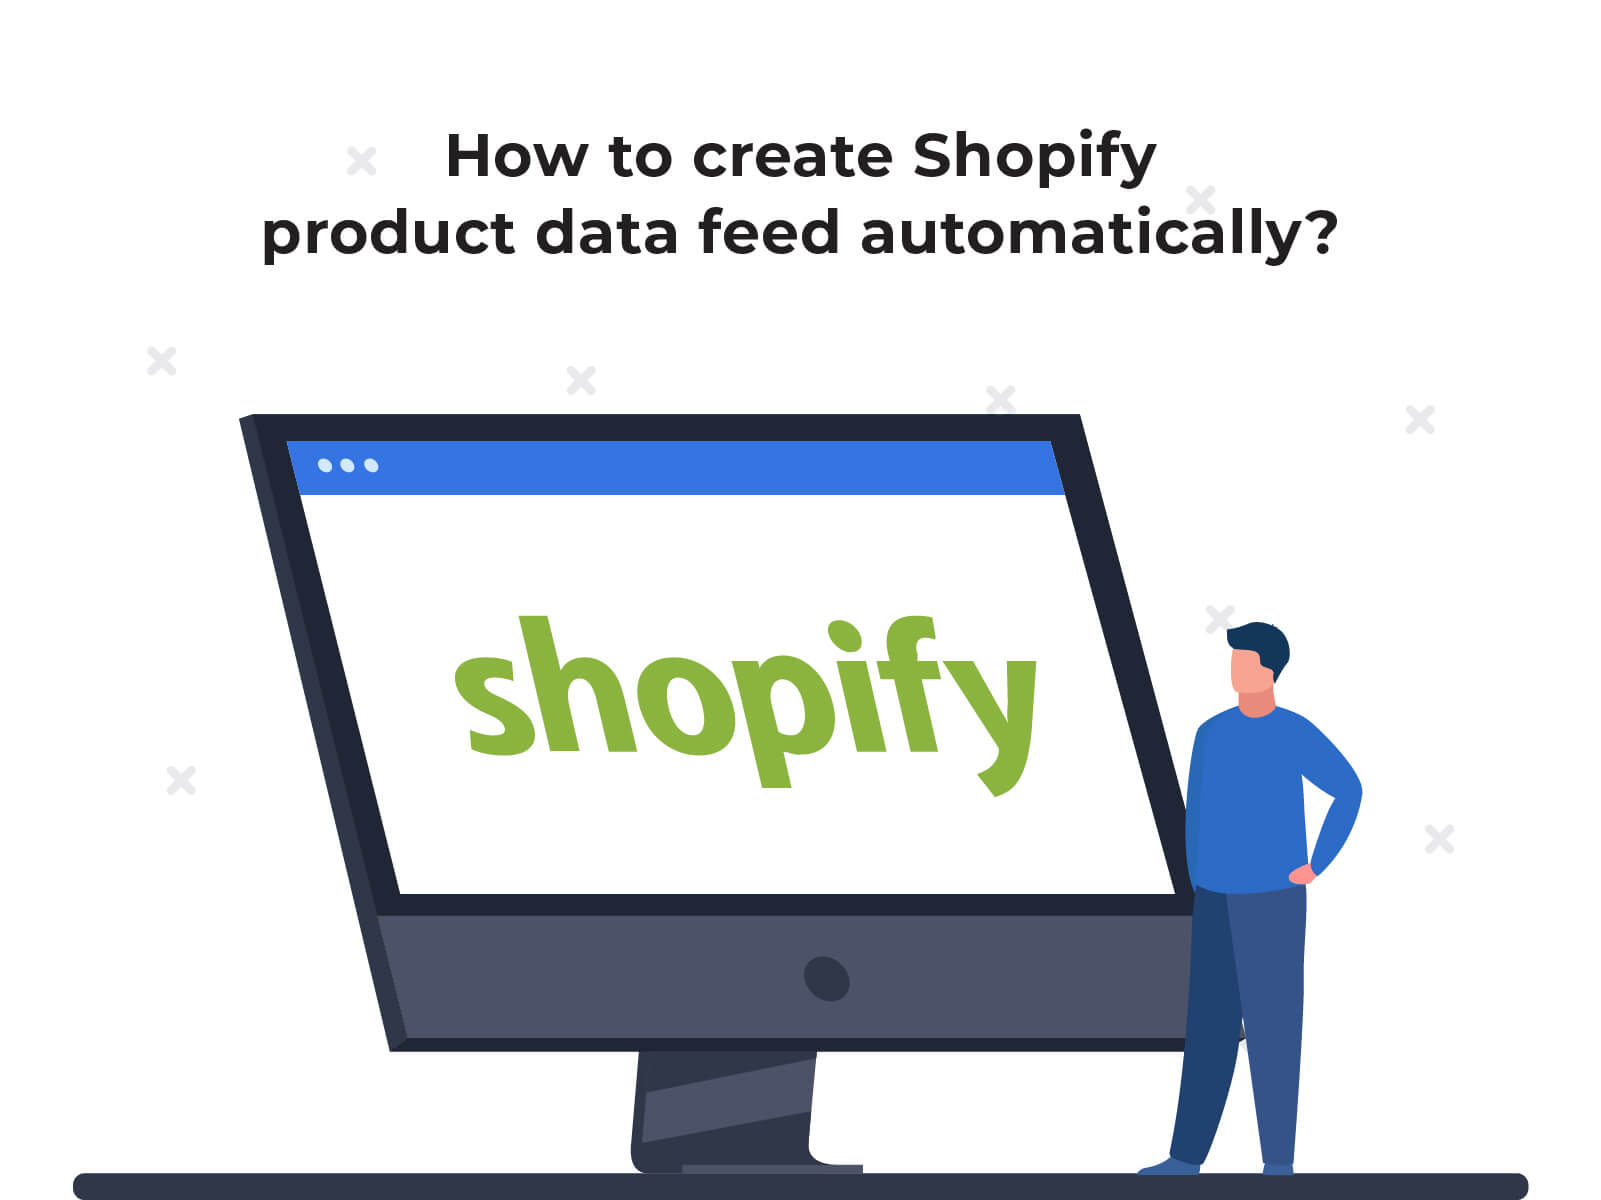 How to create Shopify product data feed automatically